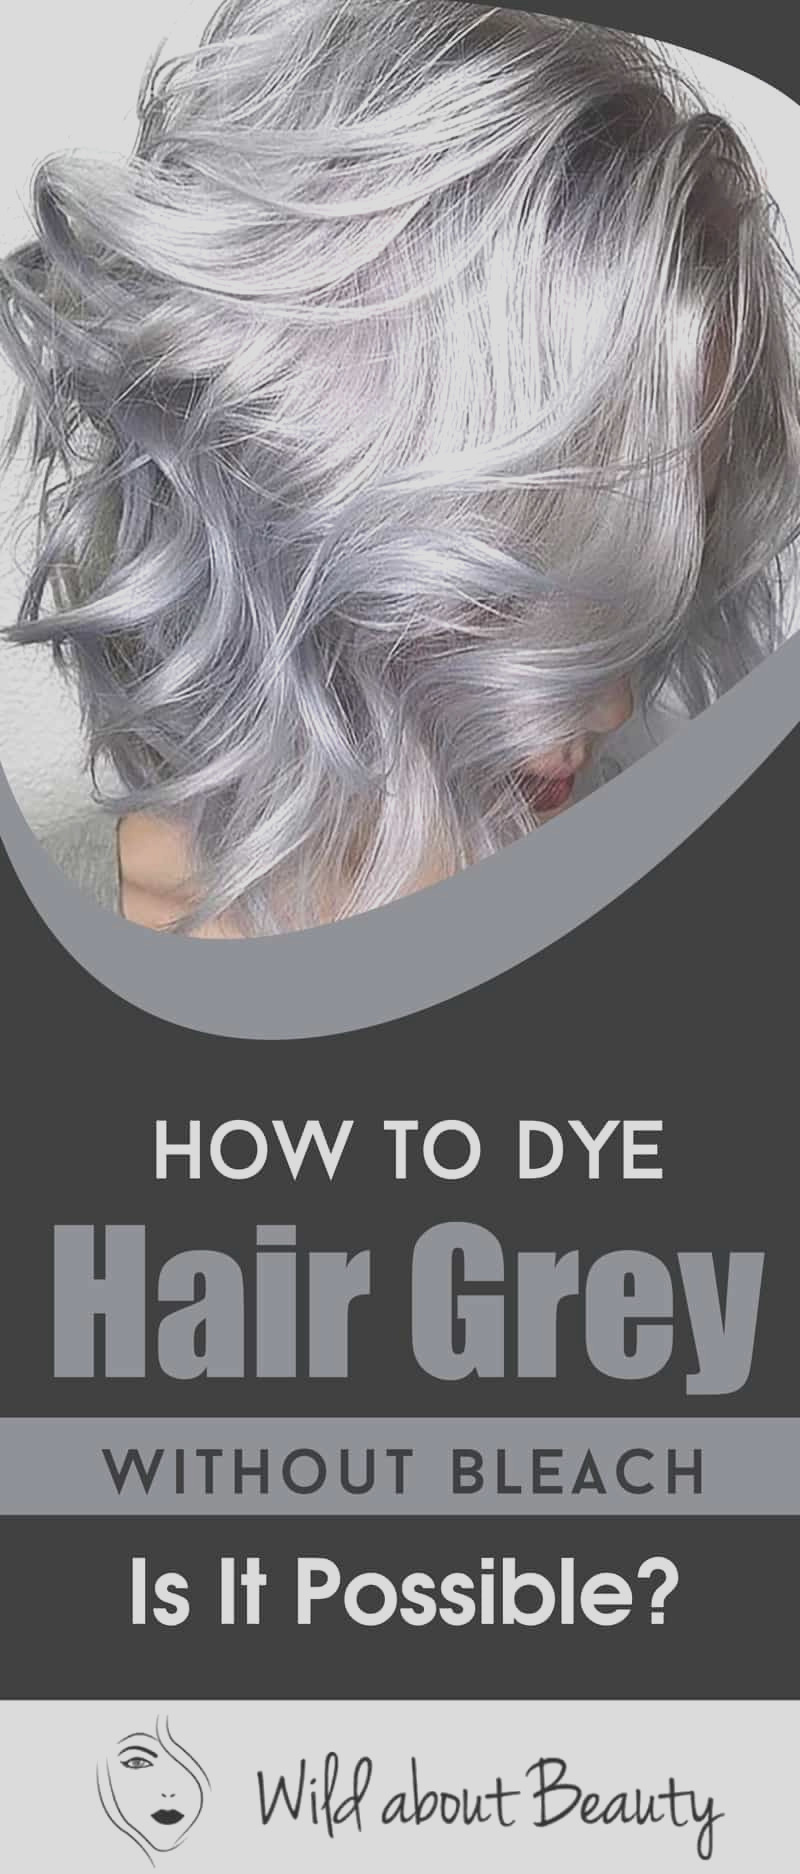 how to dye hair grey without bleach